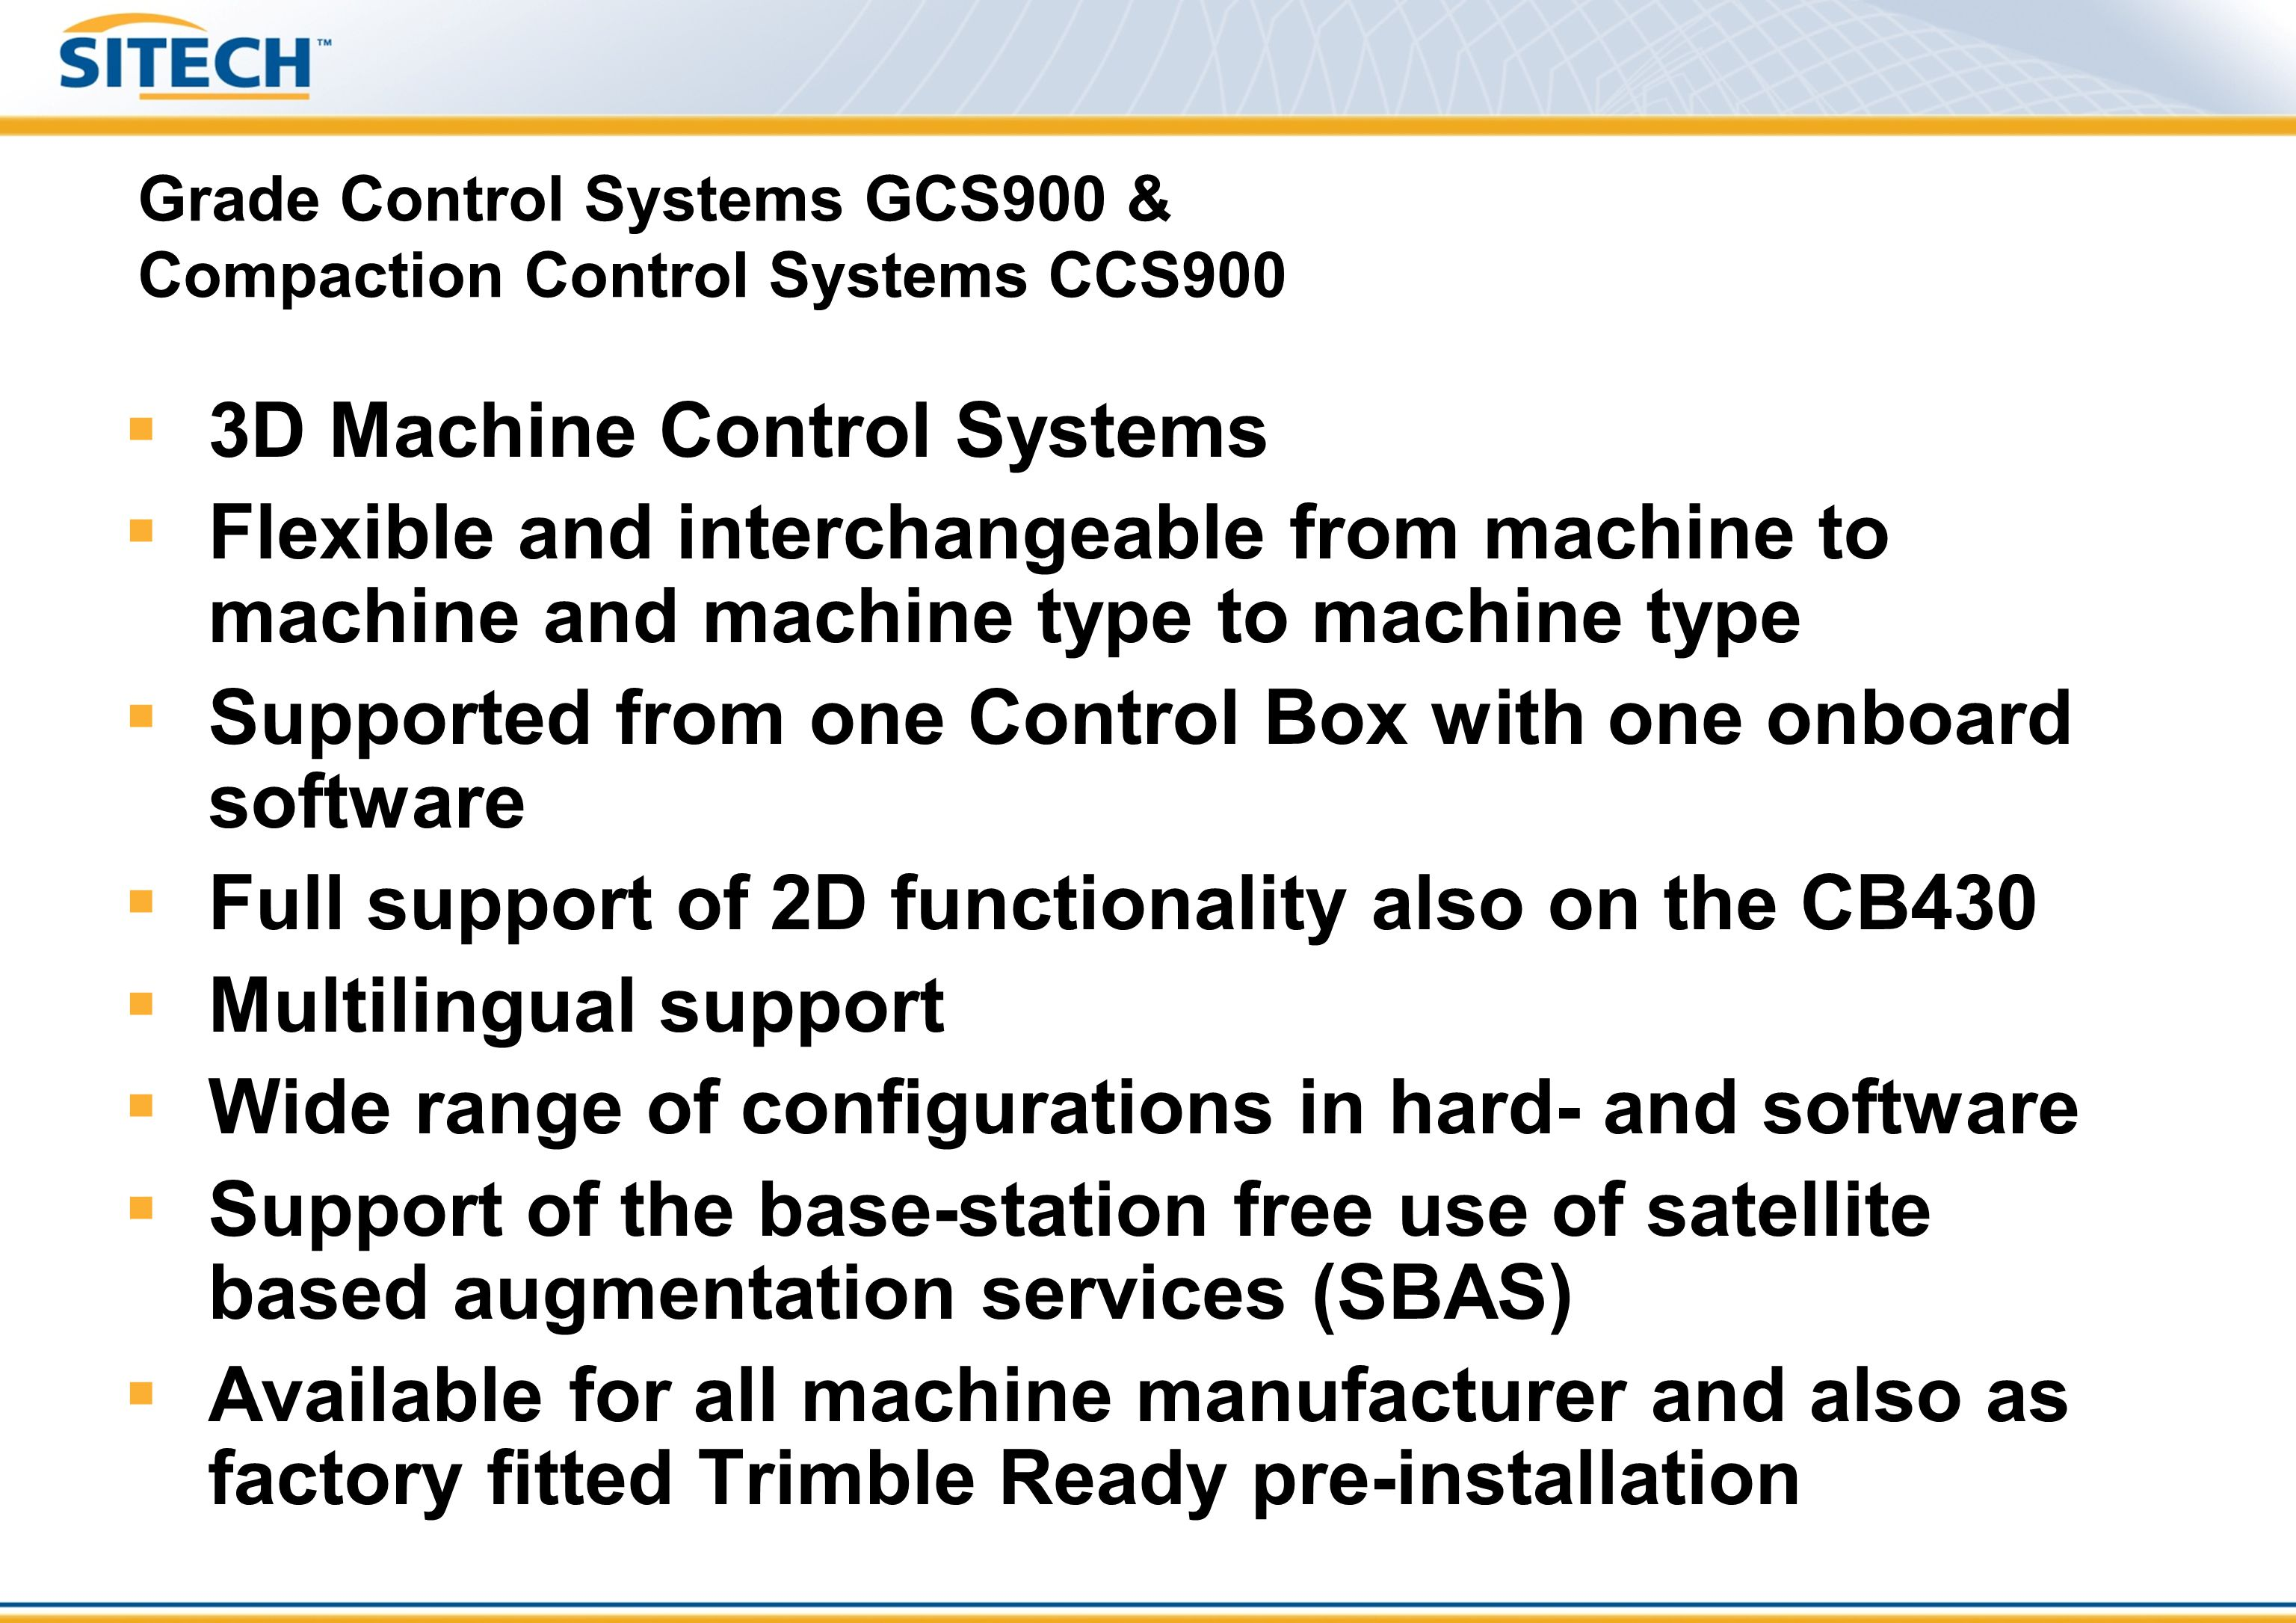 Grade Control Systems GCS900 & Compaction Control Systems CCS900